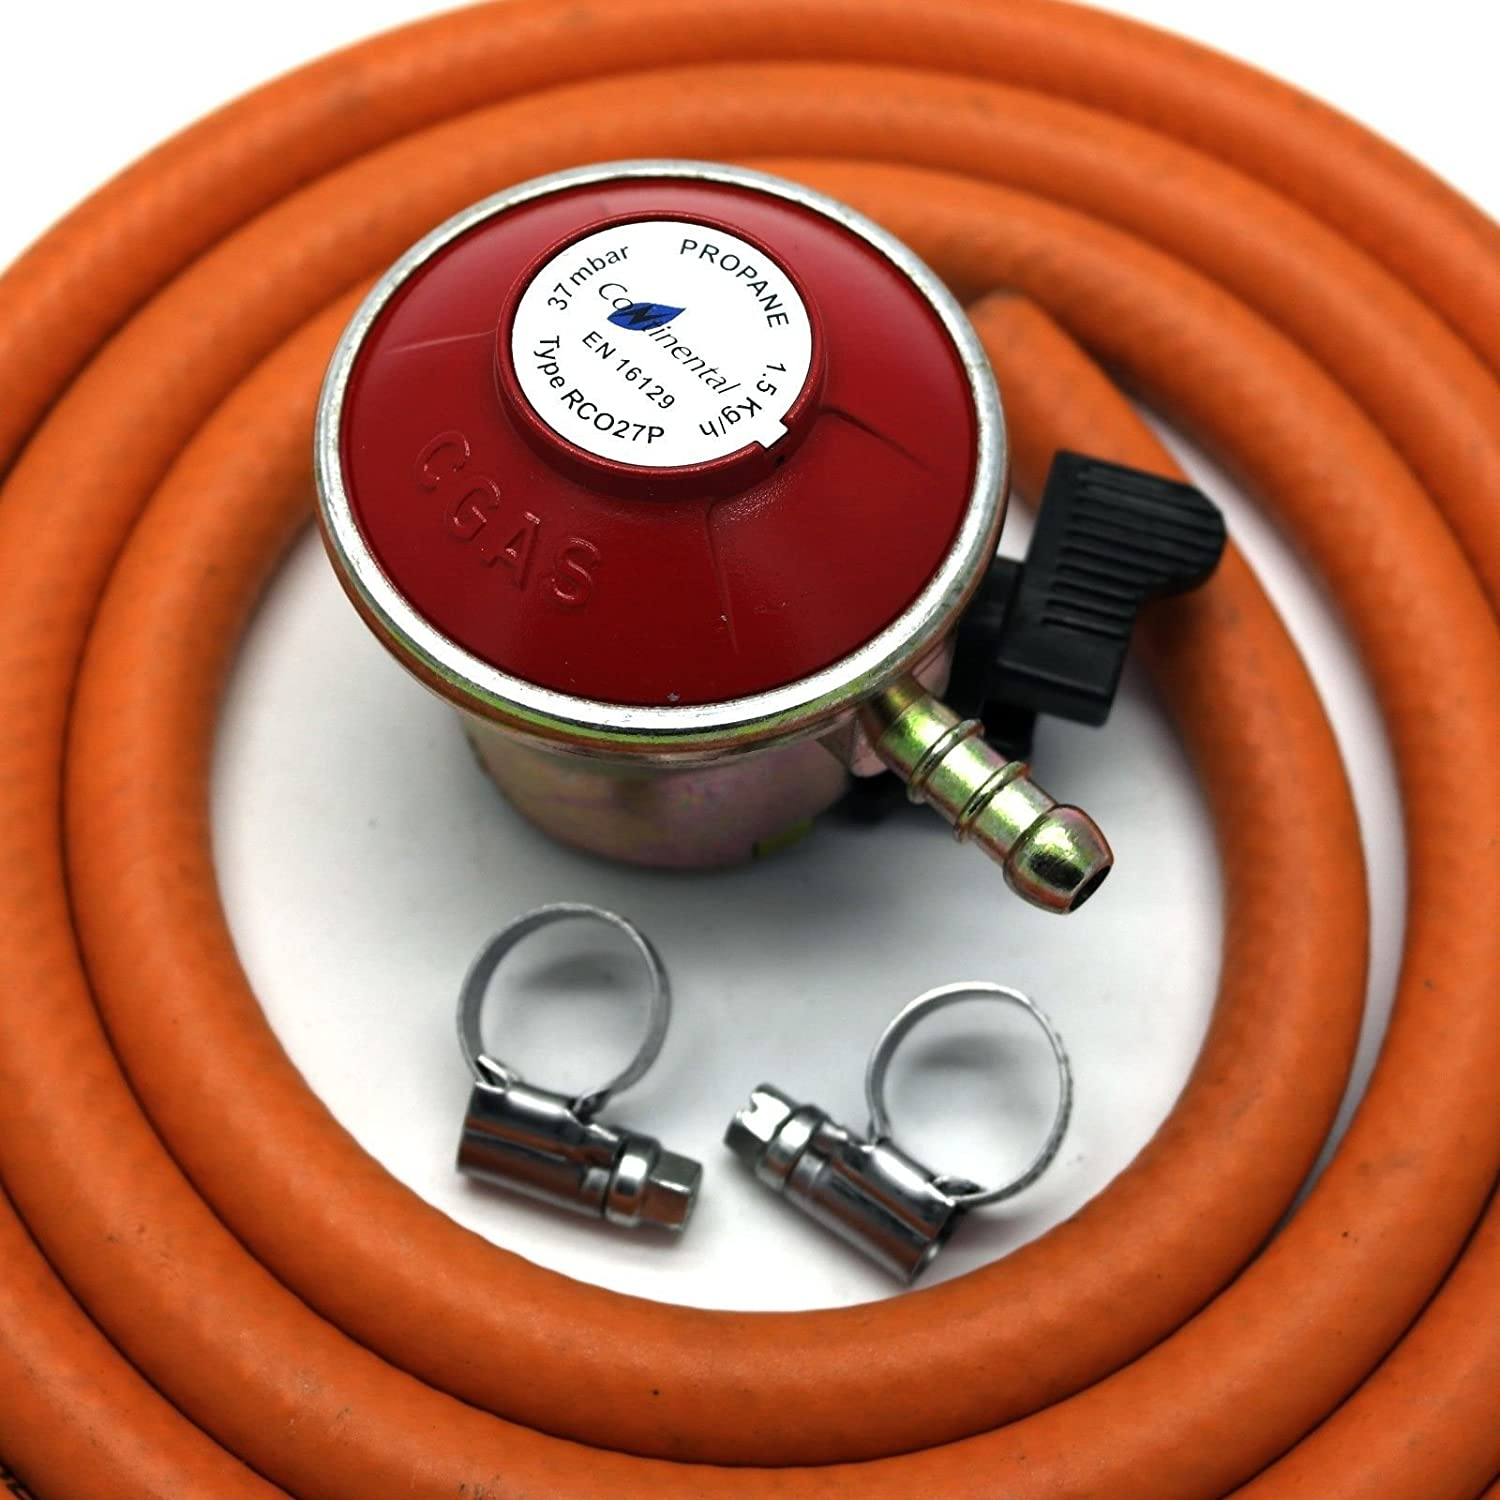 Patio Gas Regulator 27Mm Clip On With 1M Hose + 2 Clips Fits Calor / Flogas Unbranded